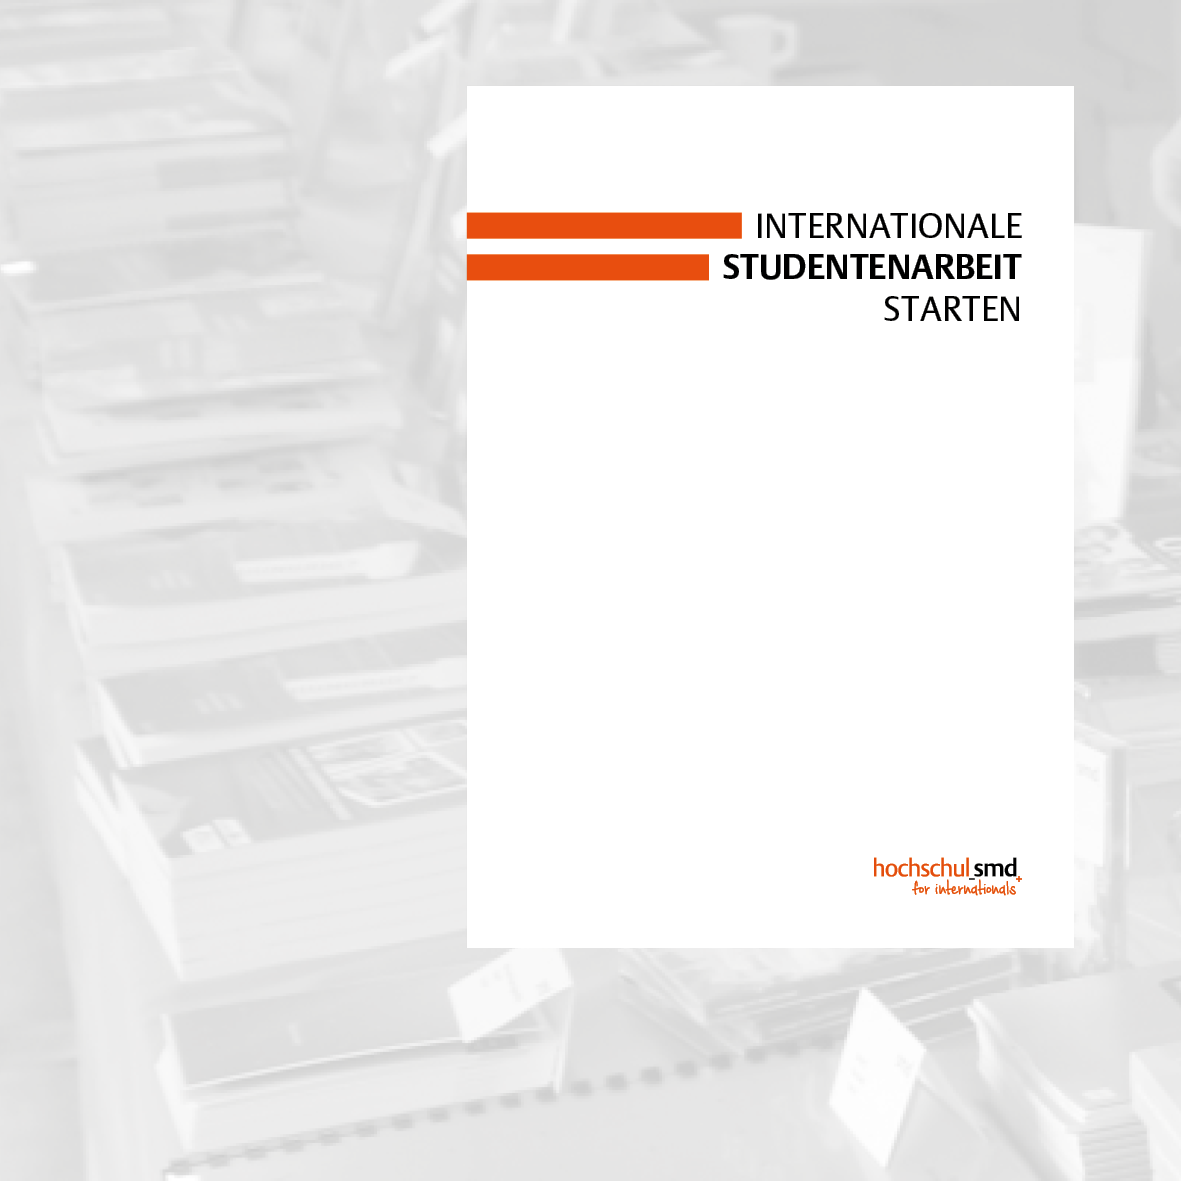 box_booklet_Internationale_Studentenarbeit.png